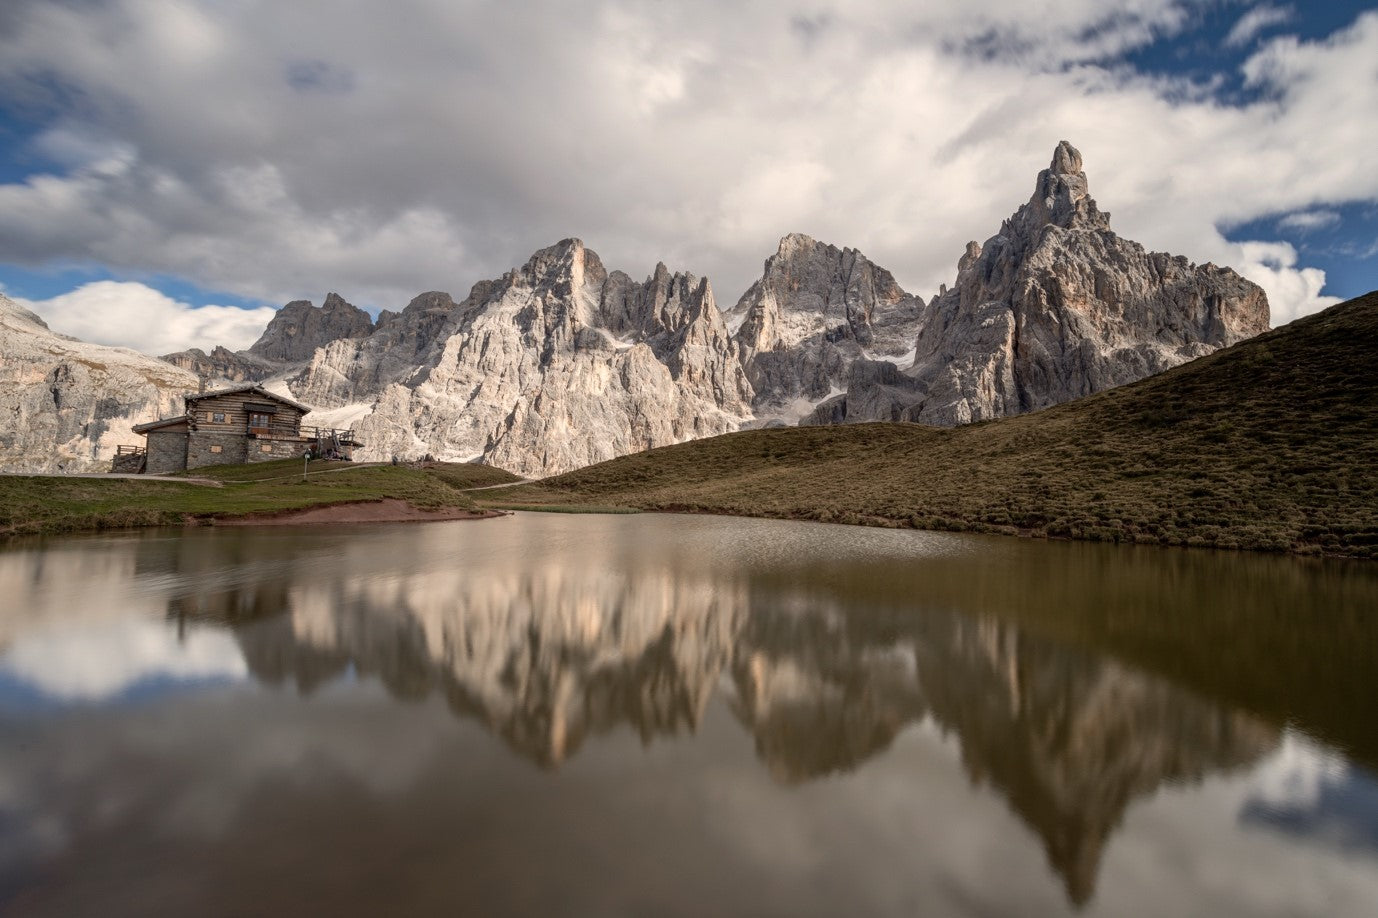 A photography adventure in the Dolomites